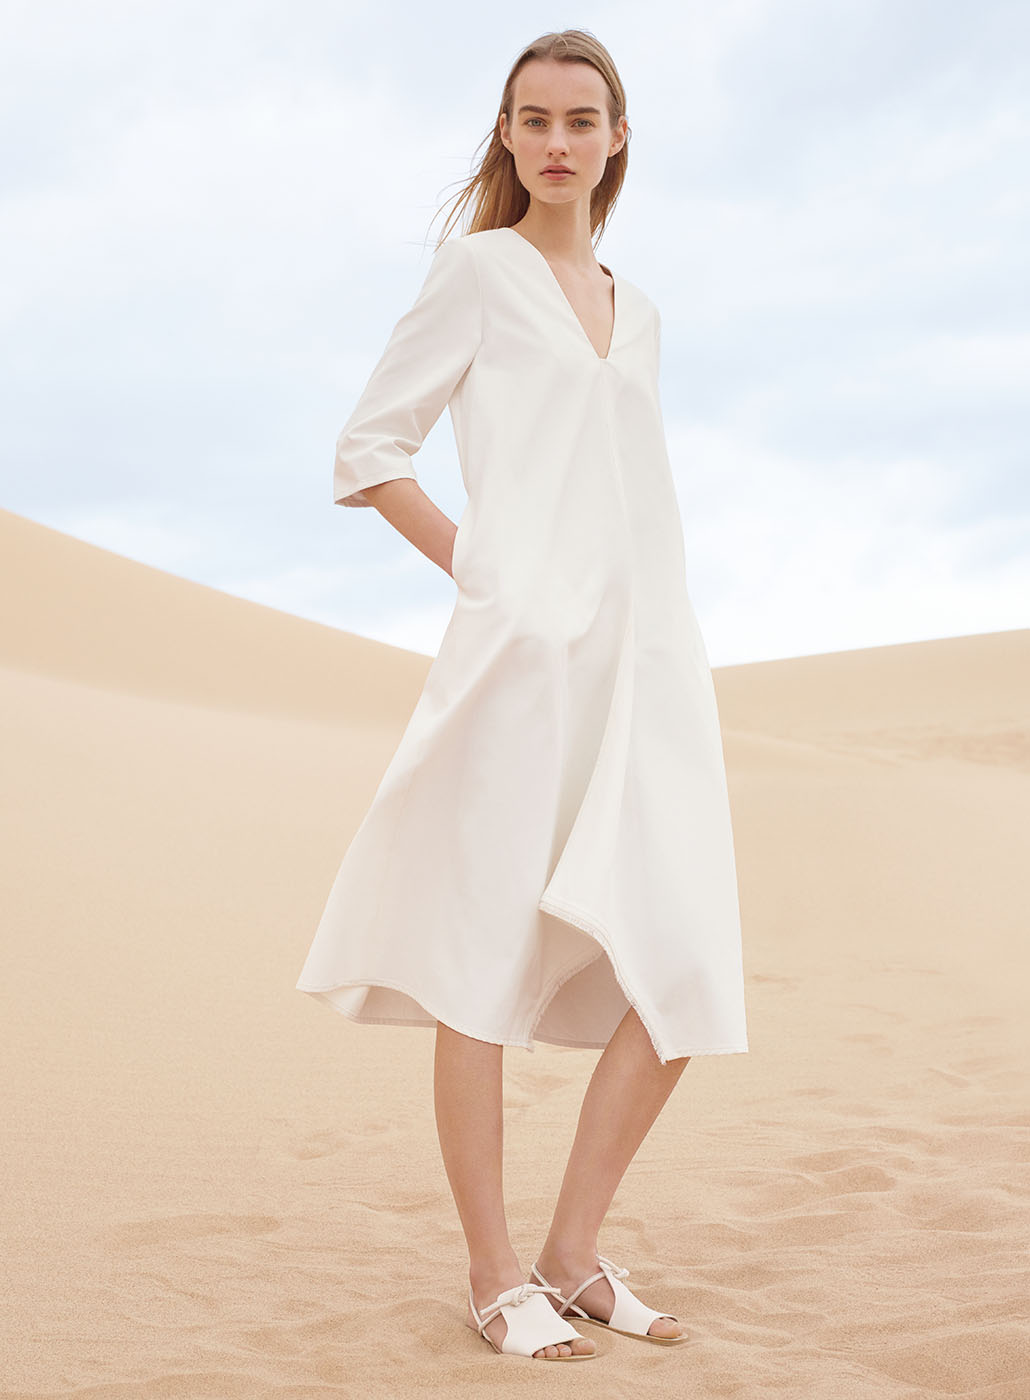 COS summer campaign | minimalistic fashion shooting in the desert